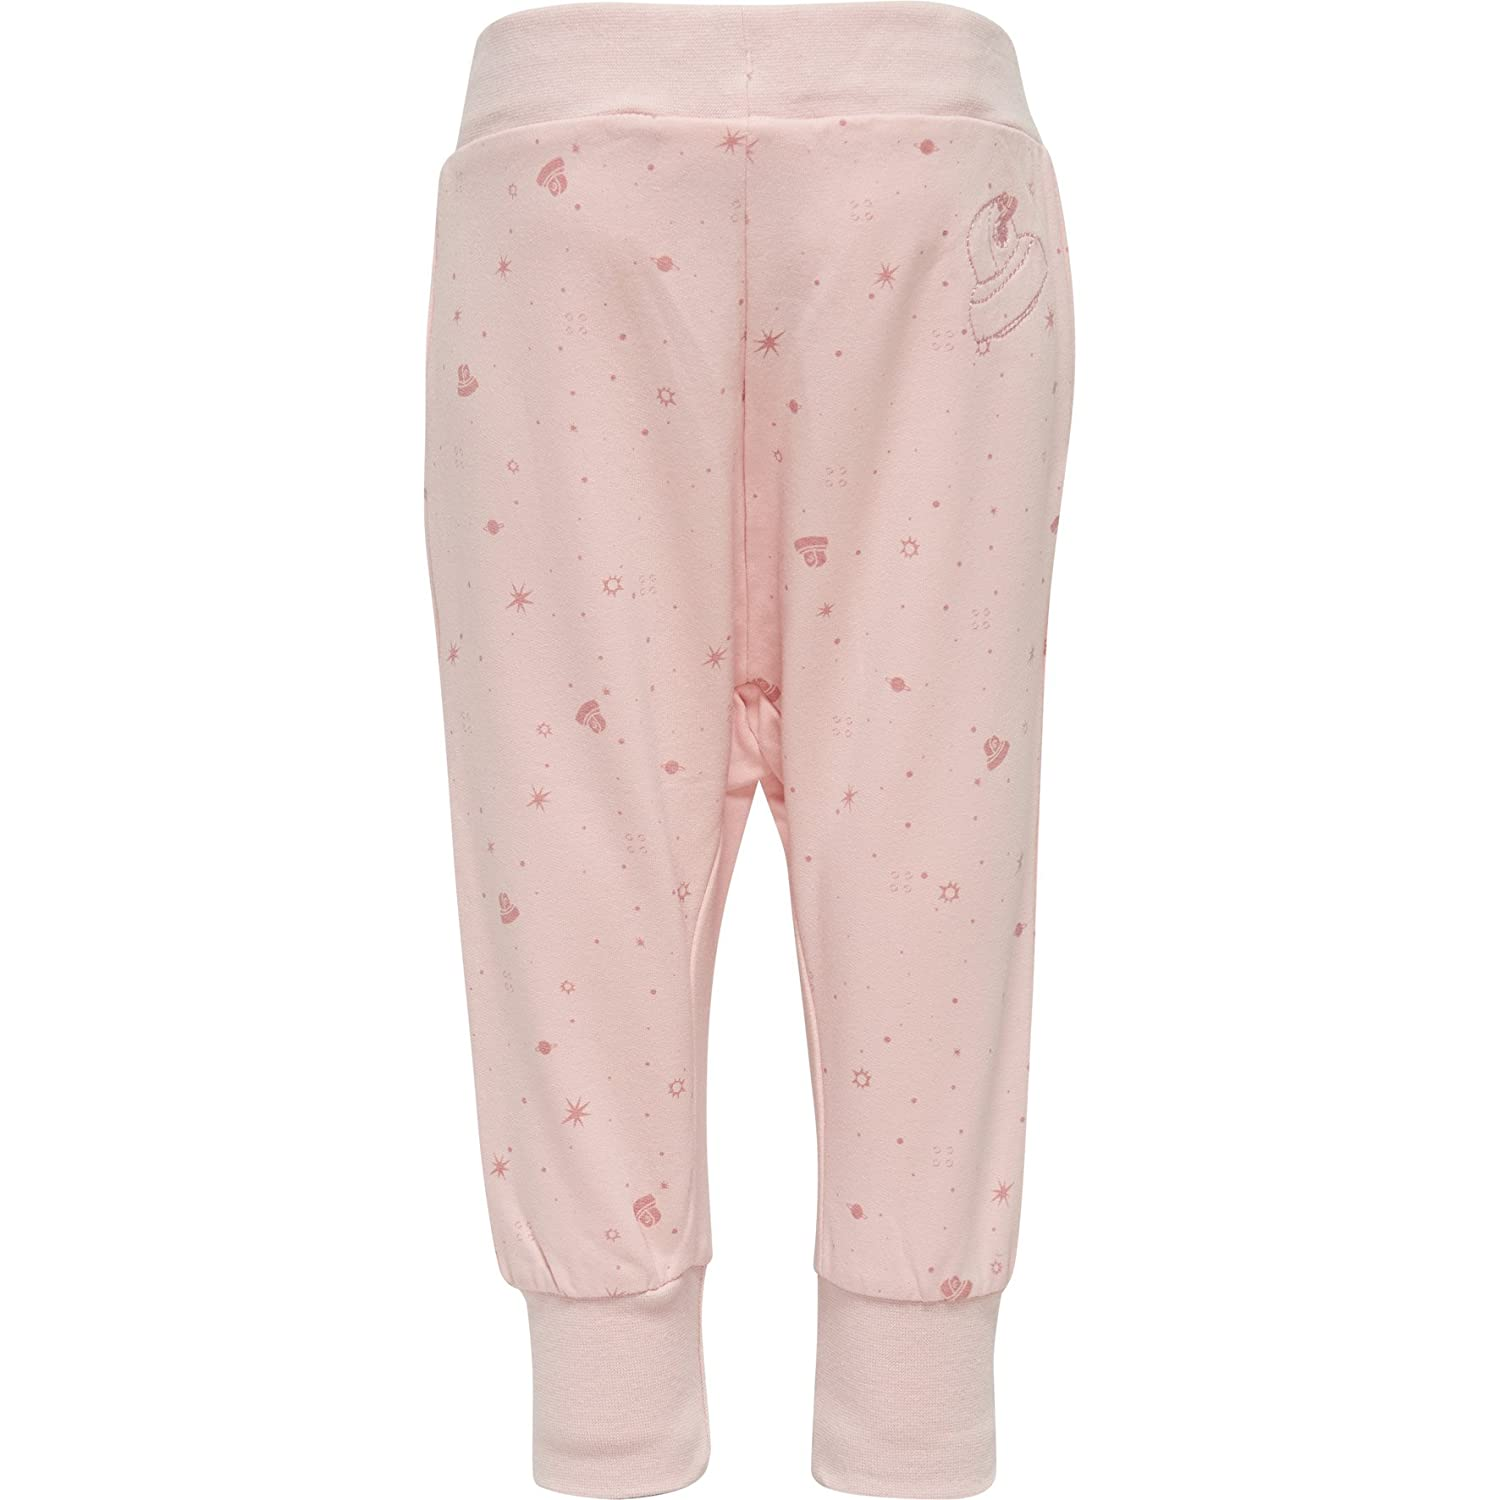 LEGO Duplo Papina 603 Sports Pants 104, Pink